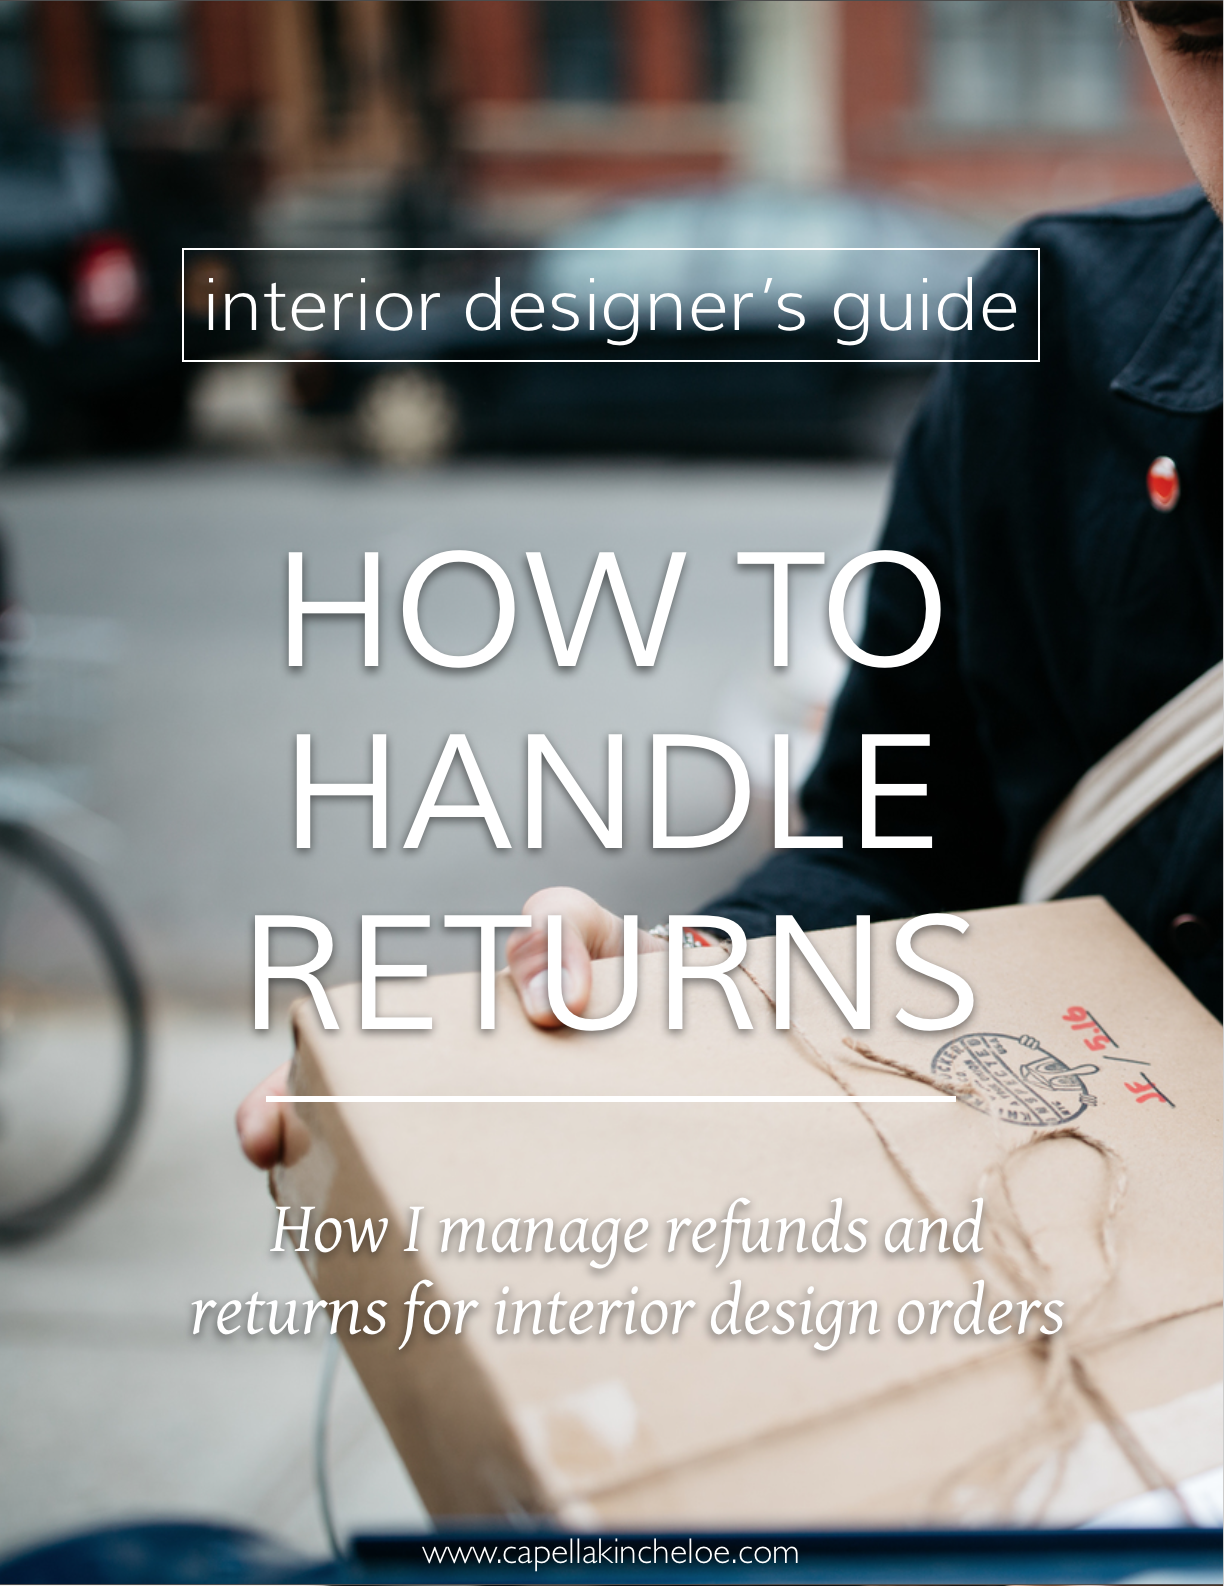 Most of the time orders placed for clients in the scope of an interior design project is not returnable, so what should you do when a client asks?